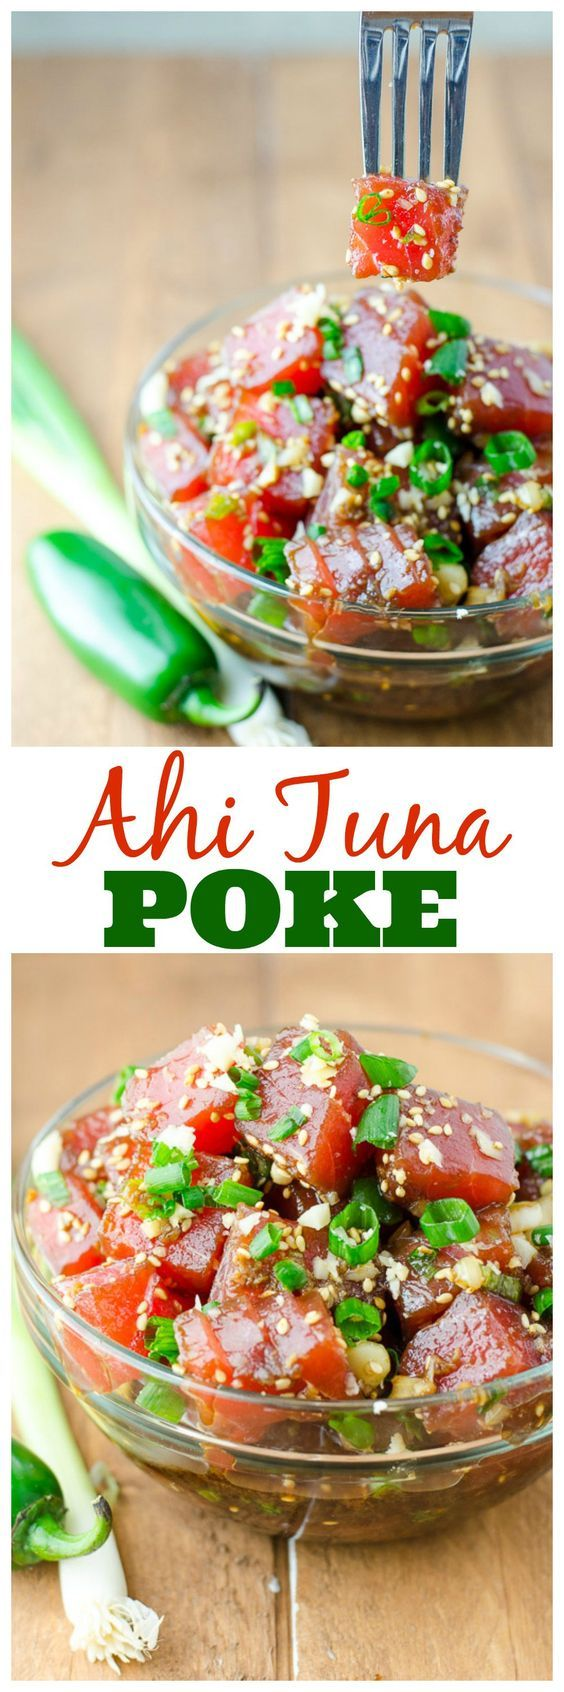 Ahi Tuna Poke is a refreshing and savory Hawaiian snack, perfect for warm weather – or anytime you want to pretend you're in a tropical paradise.